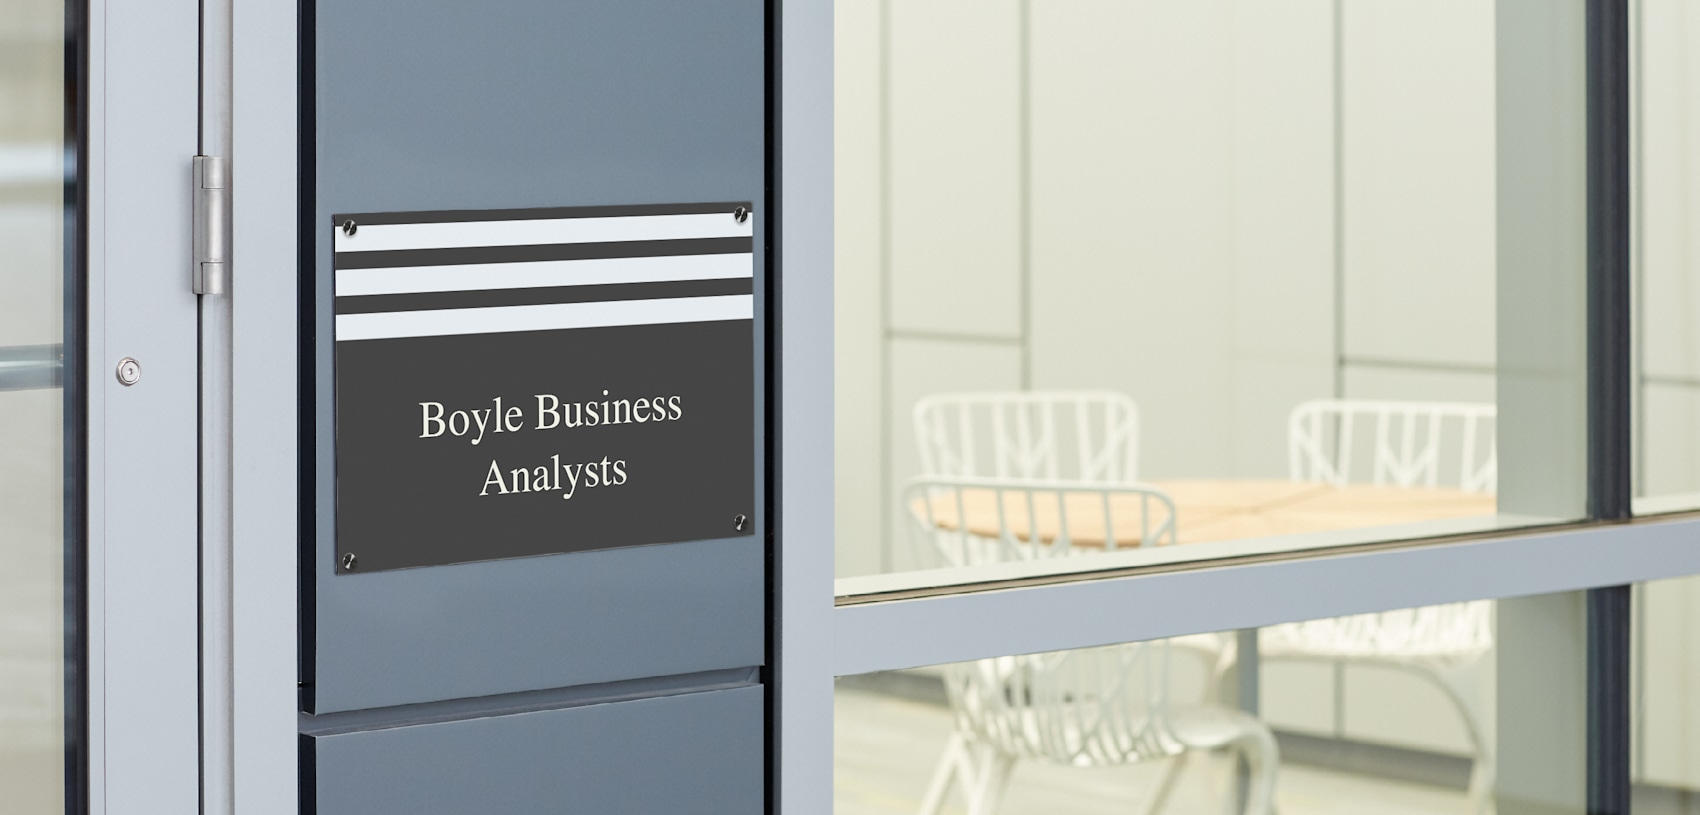 metal sign printing for business analysts